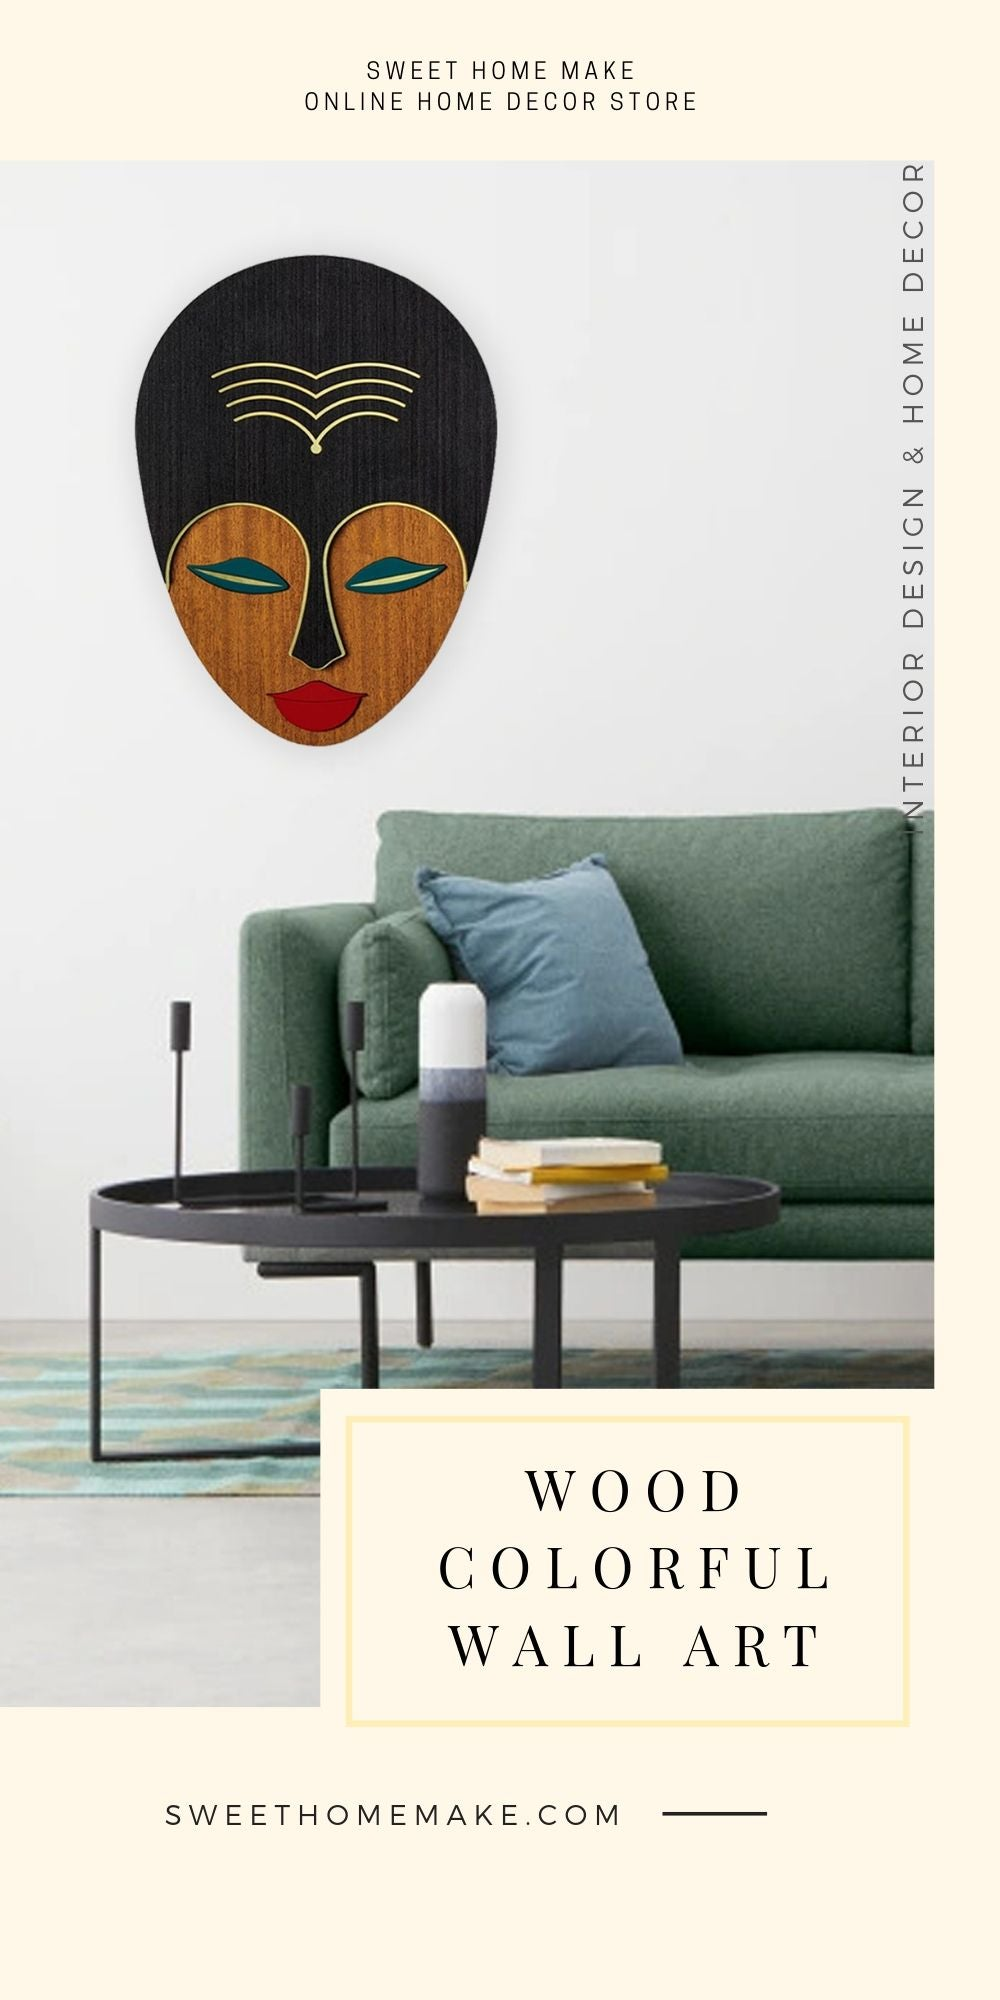 African Wall Mask with Female Face Wall Art